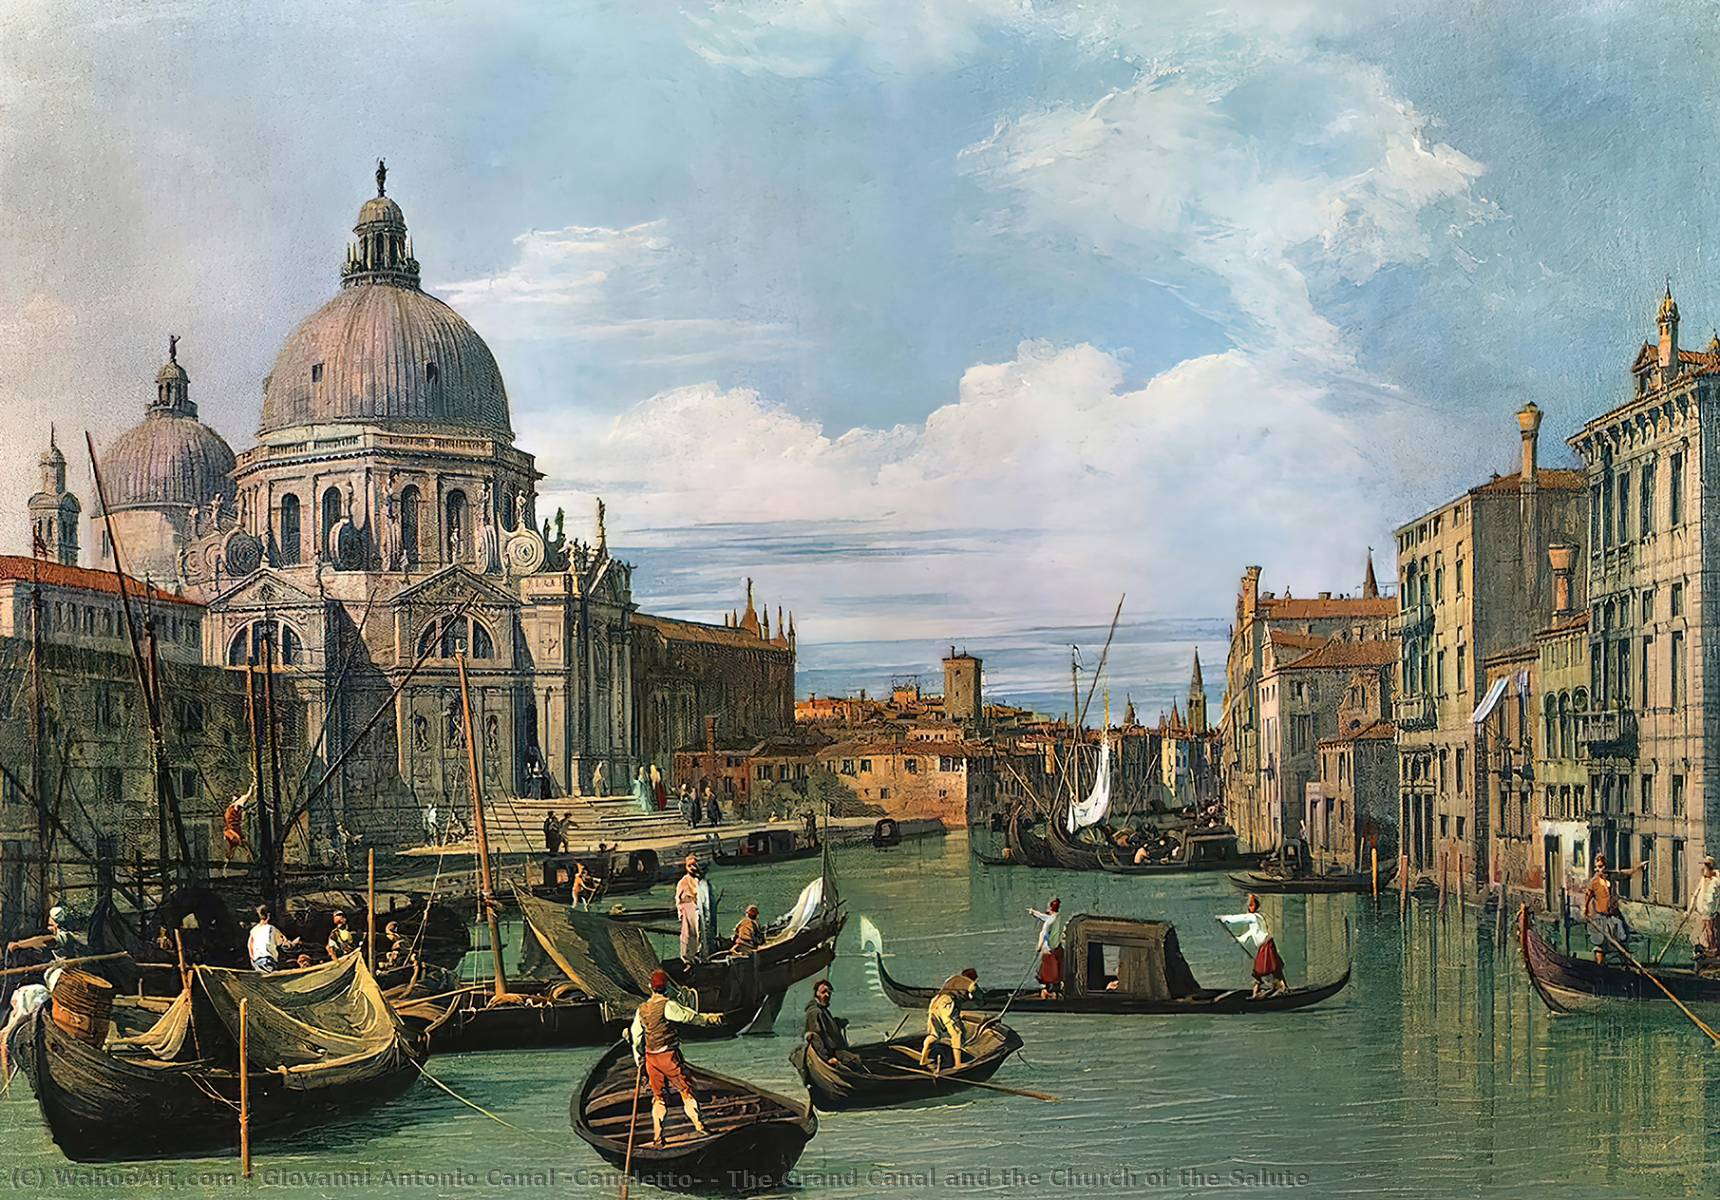 The Grand Canal and the Church of the Salute, Oil On Canvas by Giovanni Antonio Canal (Canaletto) (1697-1768, Italy)